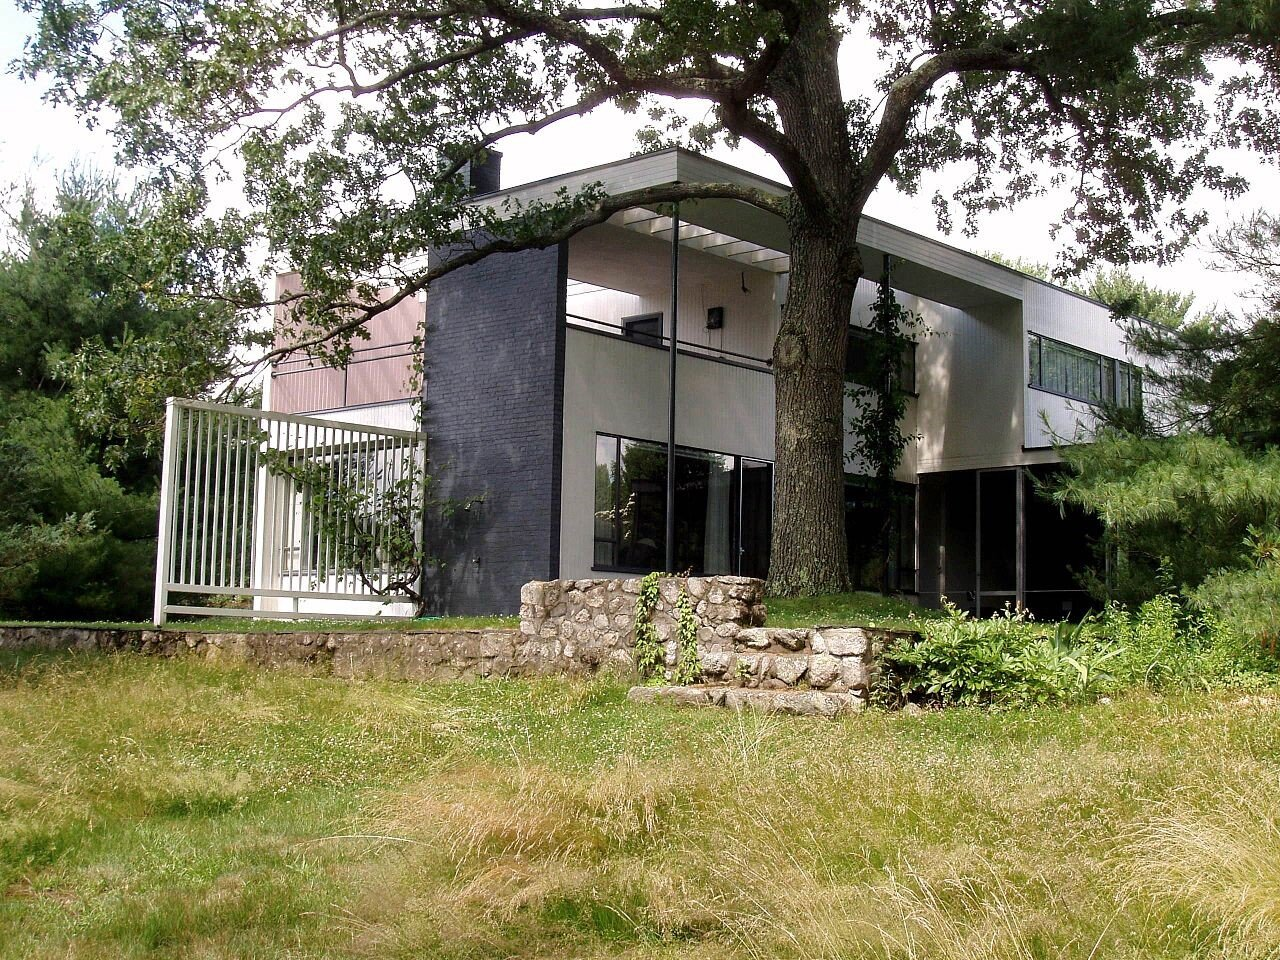 Gropius House, Lincoln Massachusetts  | photo courtesy of Daderot and Wikimedia Commons